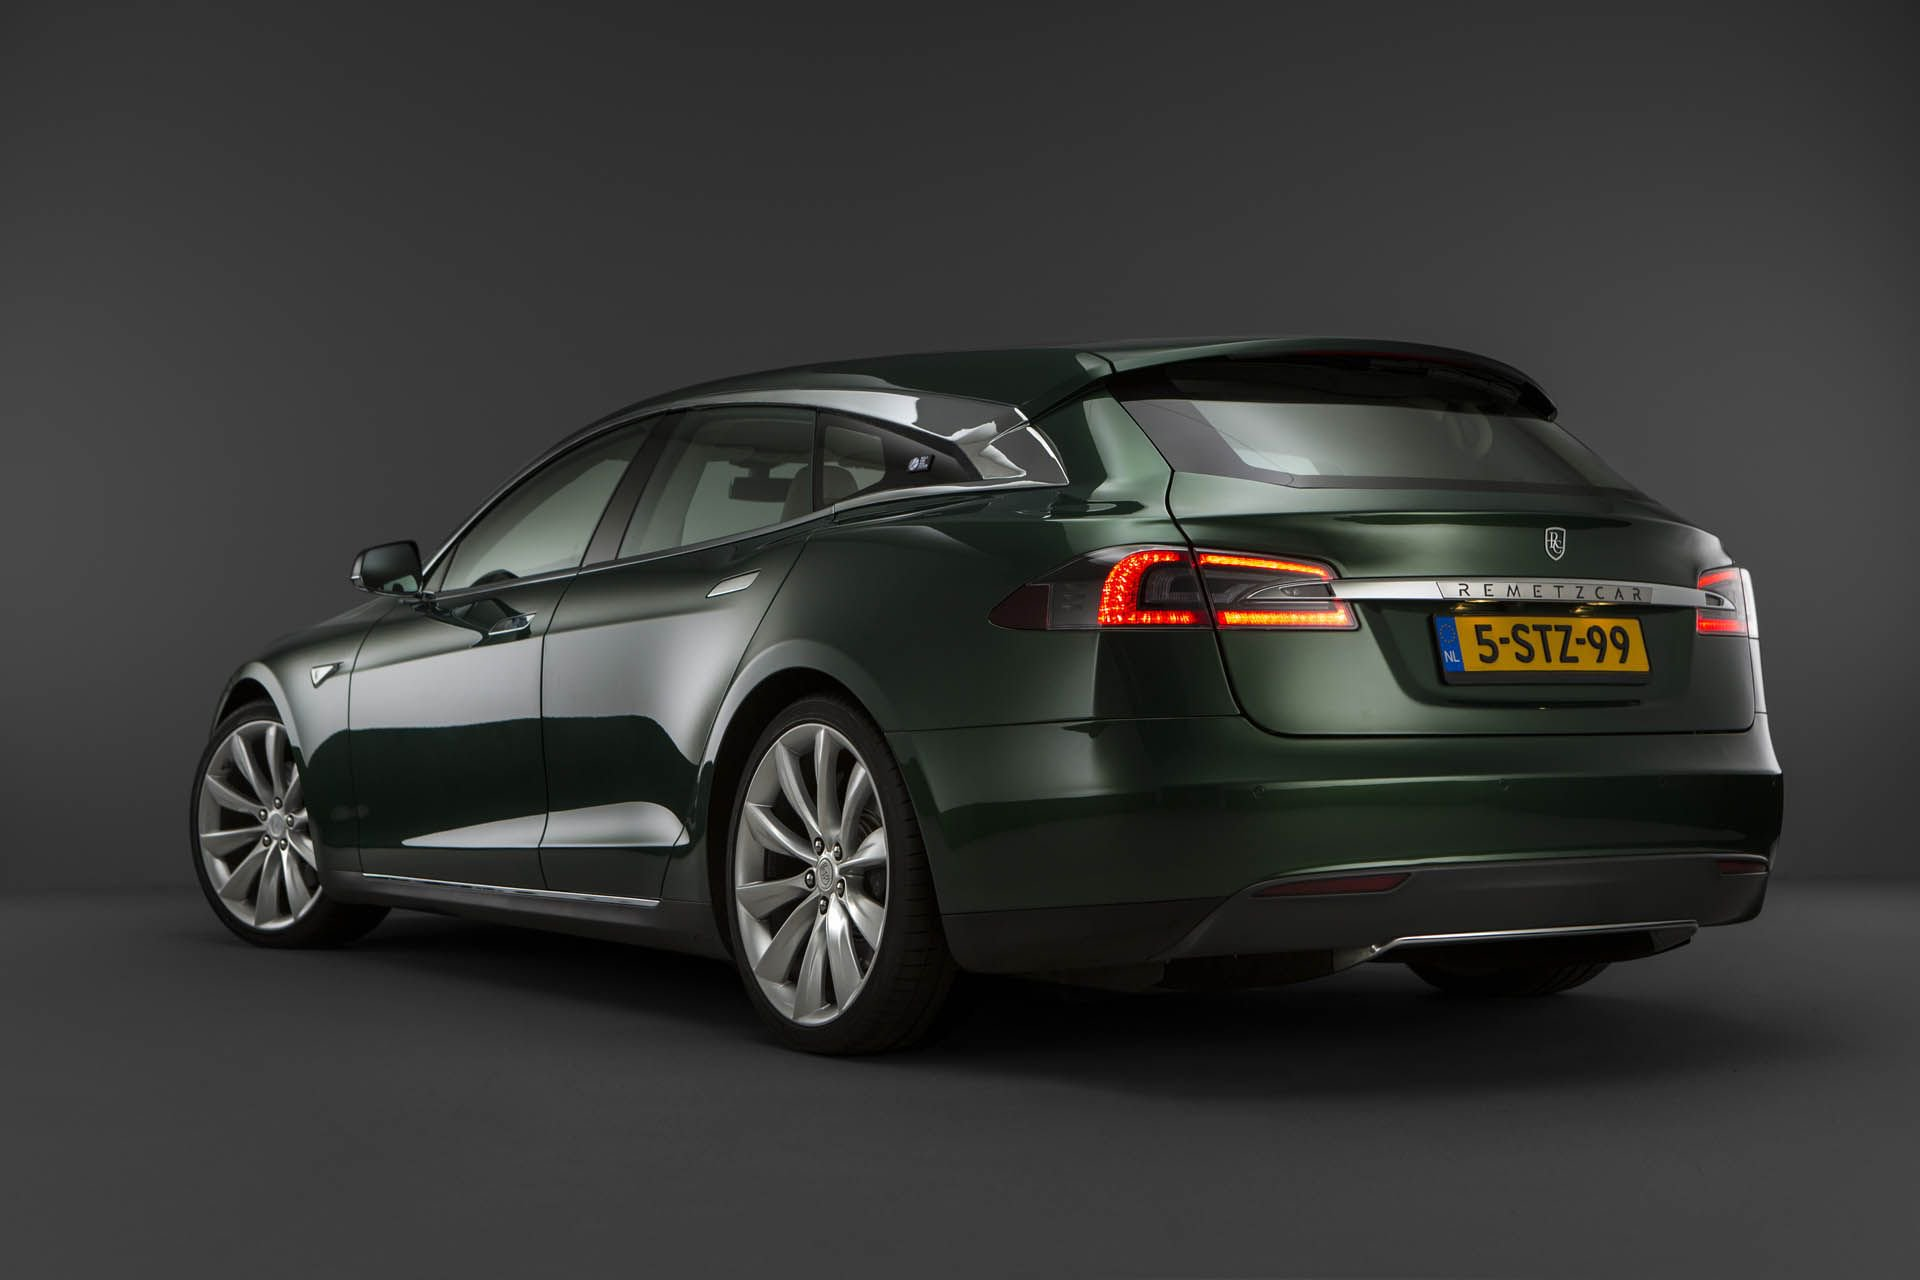 tesla-model-s-shooting-brake-remetzcar-46